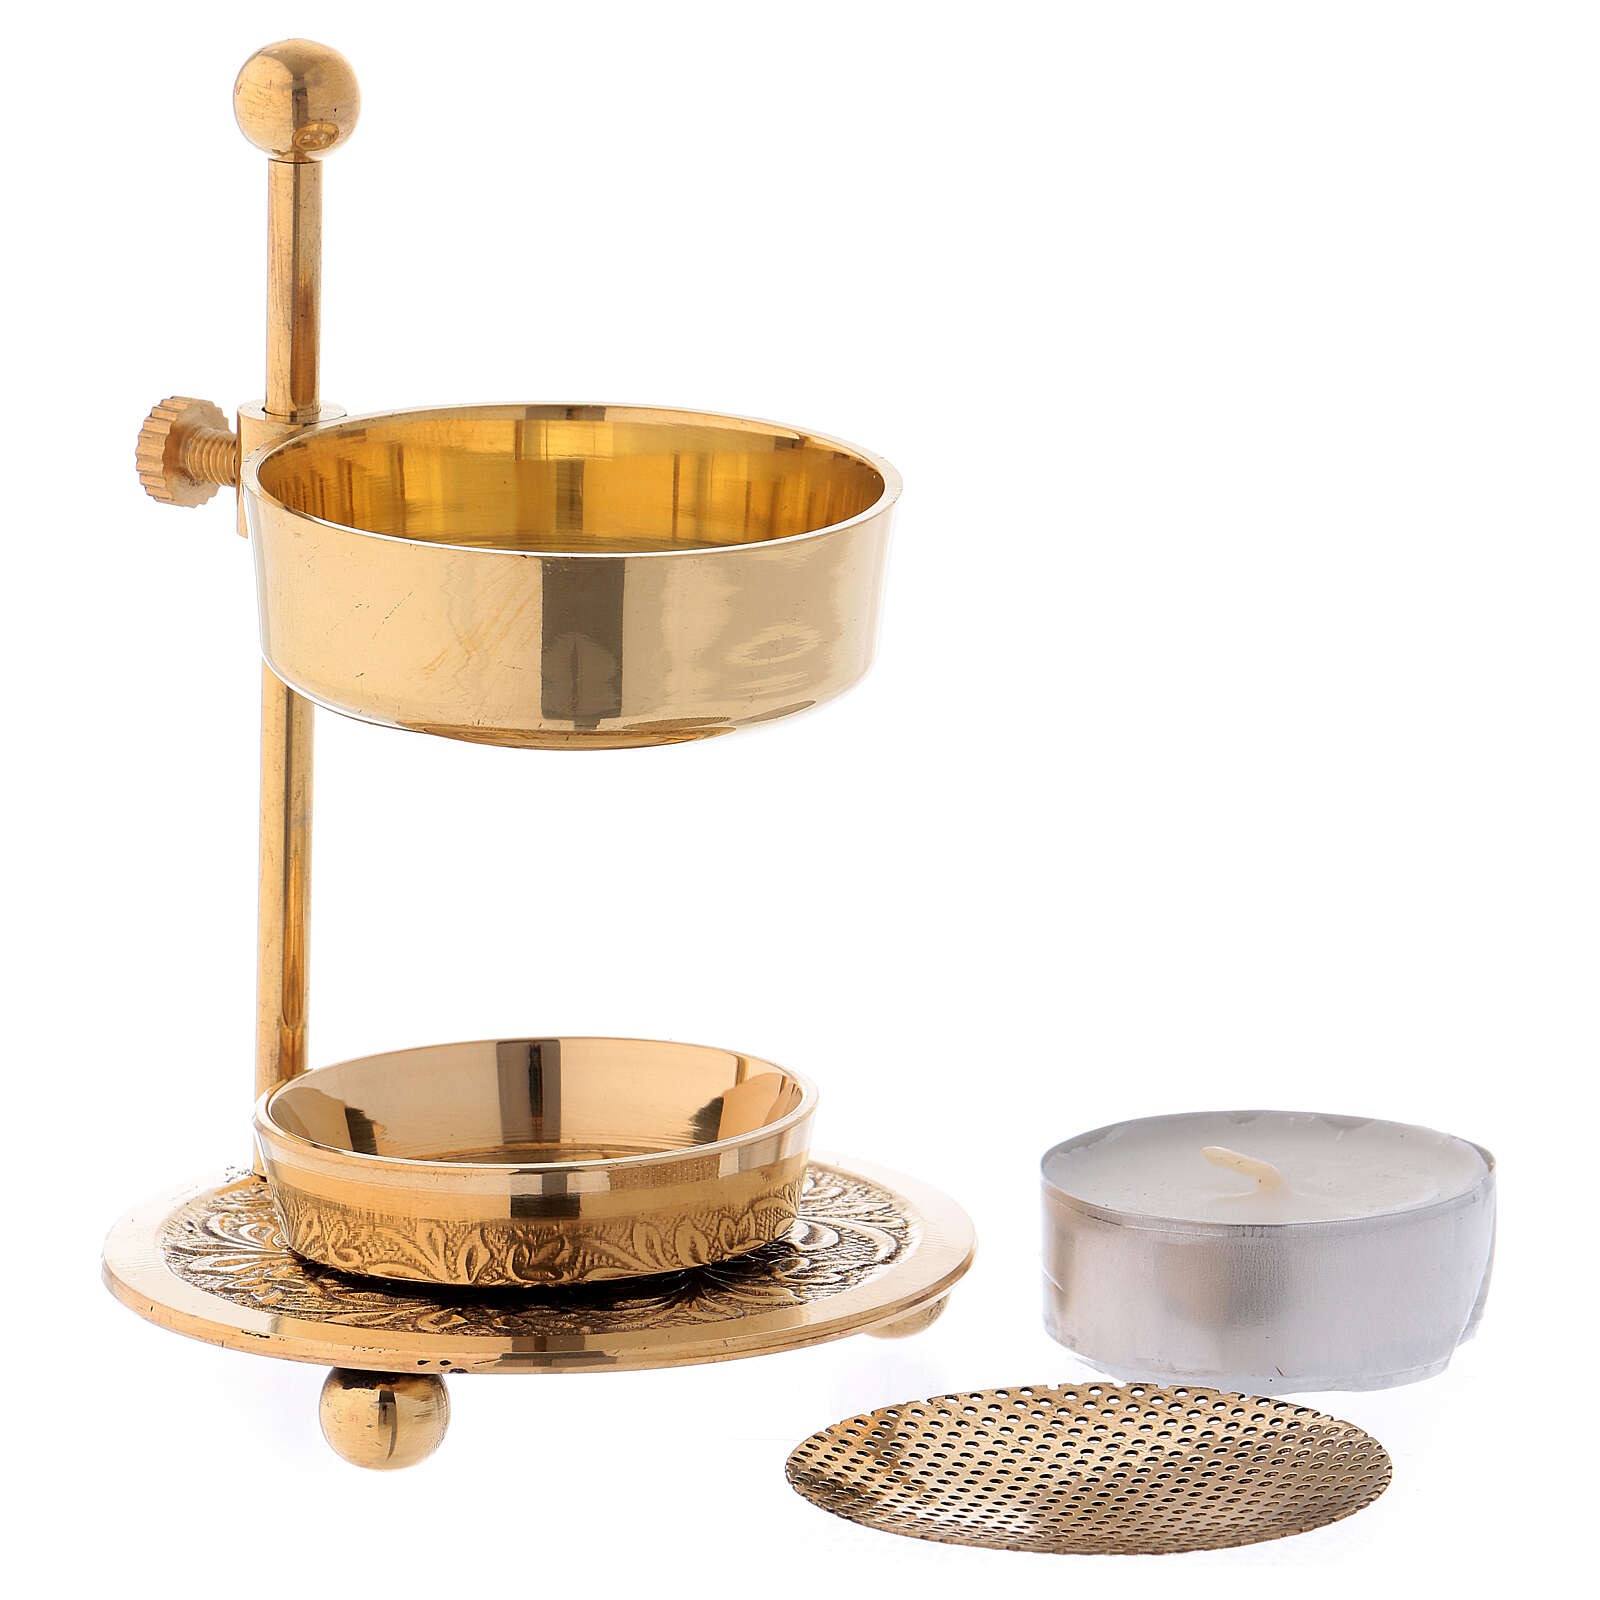 Gold plated brass incense burner h 4 1/4 in 3